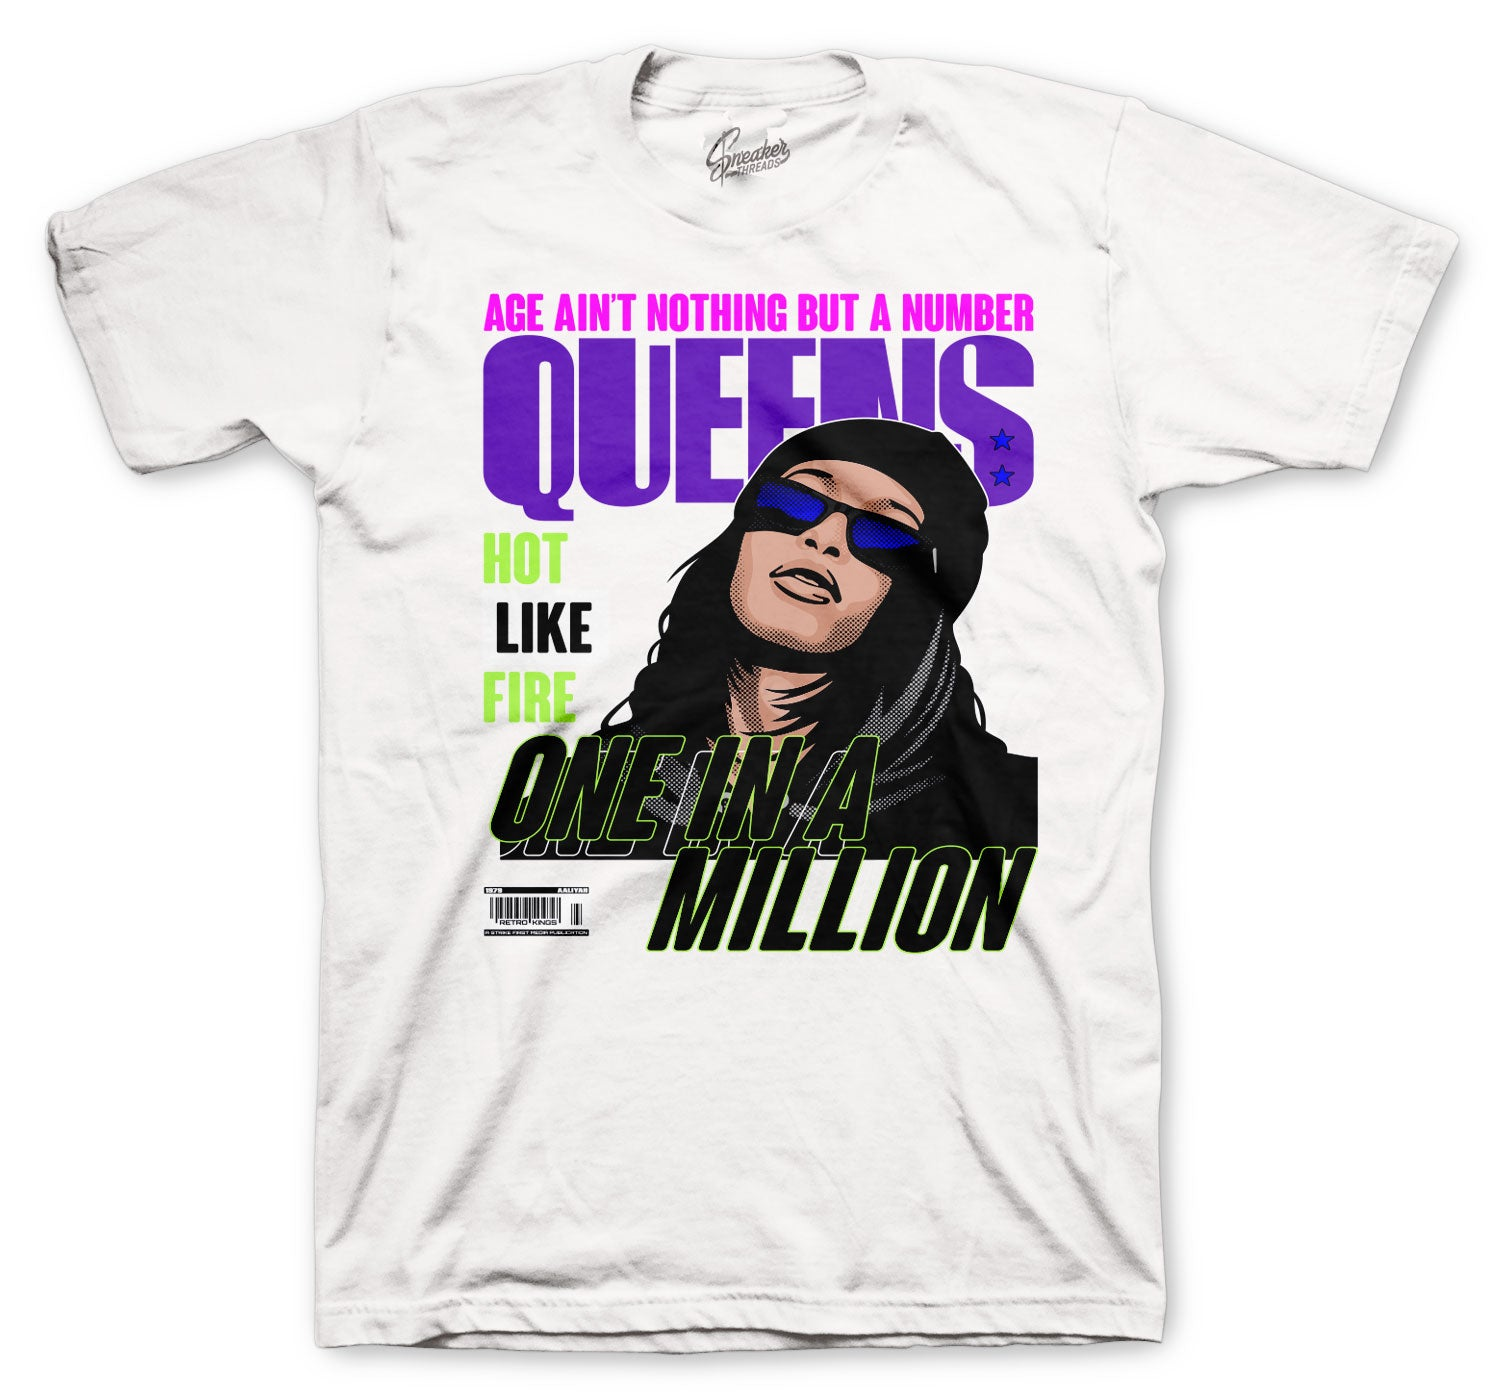 Jordan 5 Alternate Bel Air Queens Million Shirt